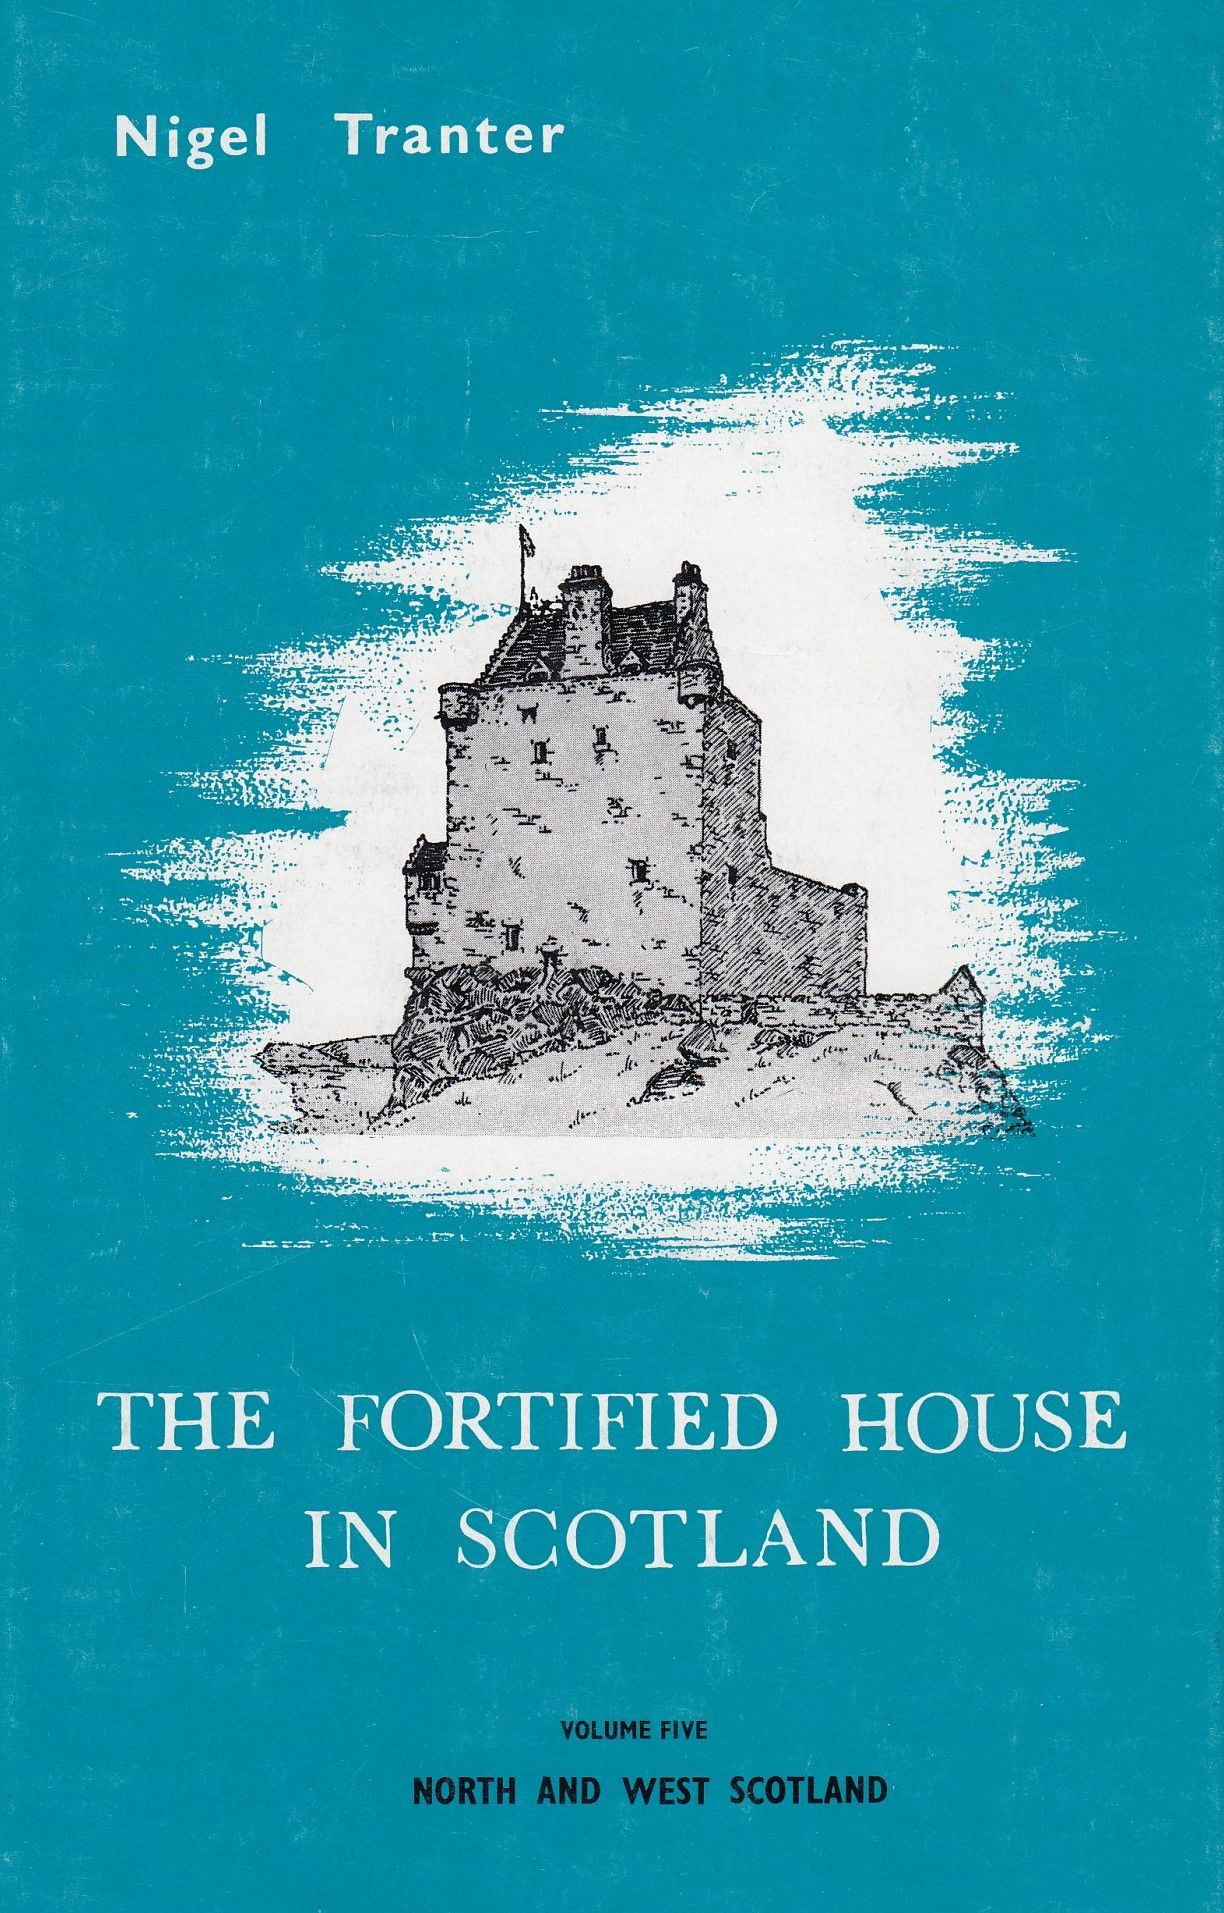 clan gunn castles' are at best, fortalices (fortified houses) due to